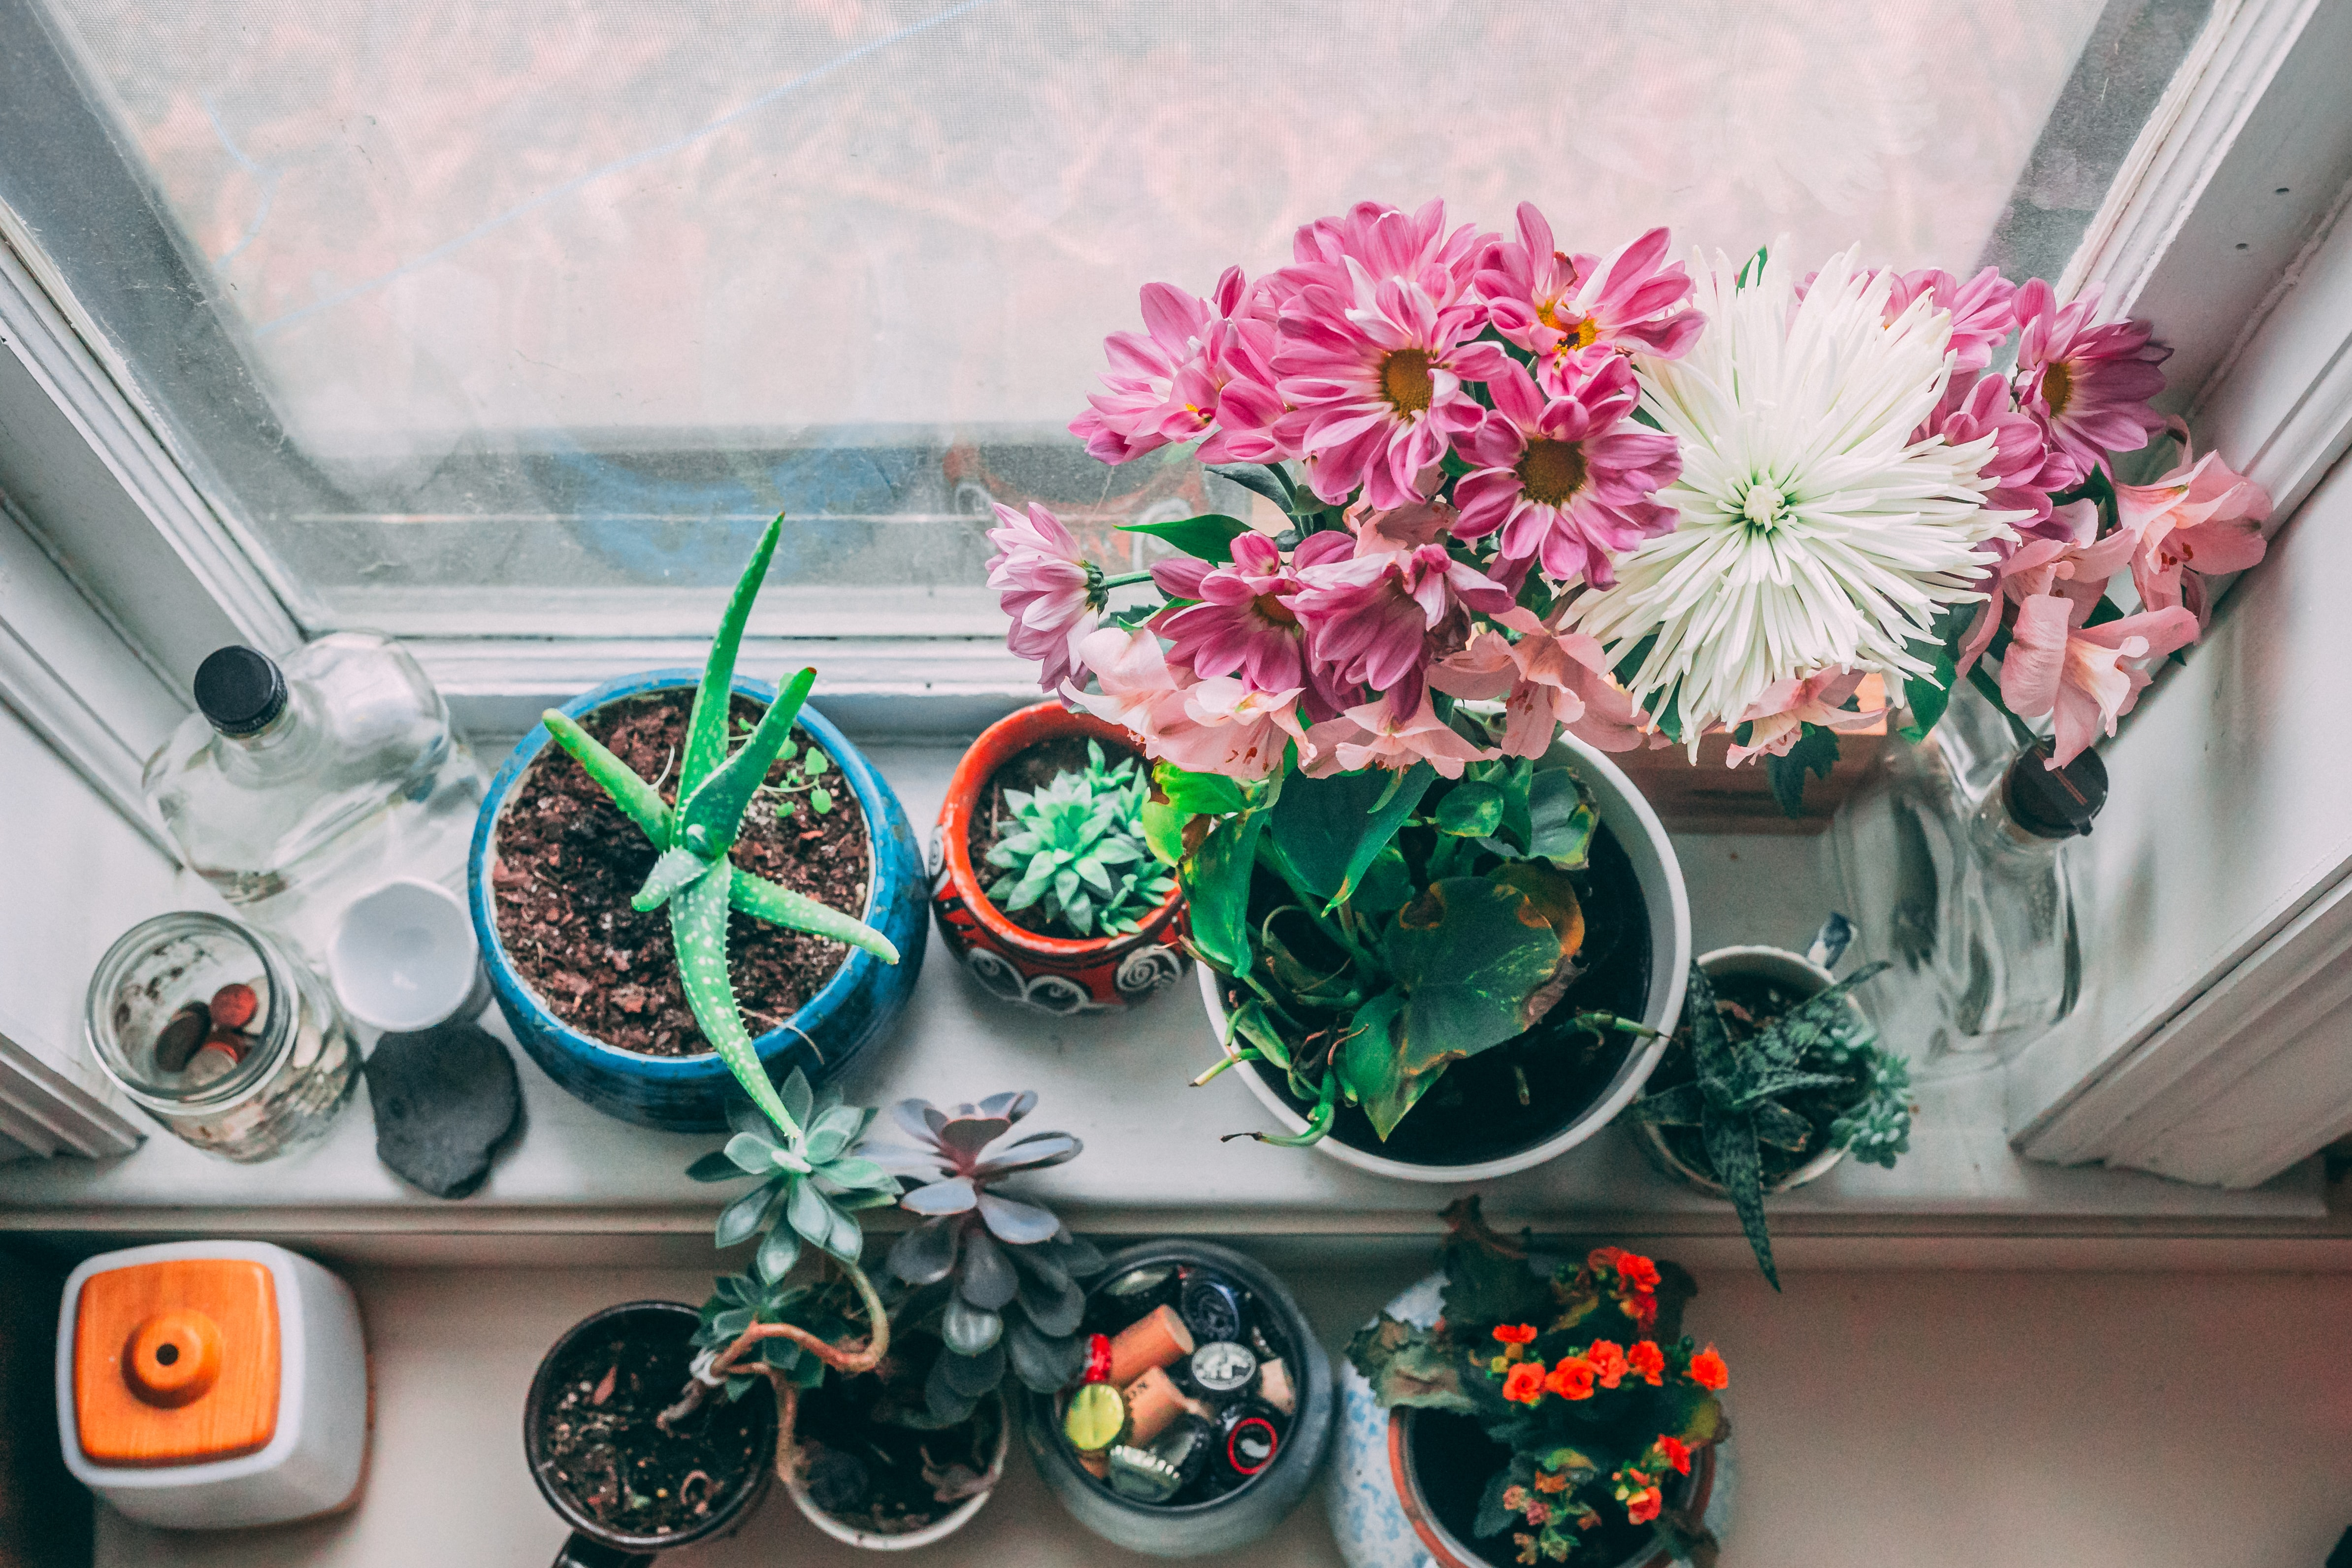 assorted-color petaled flowers near white wooden window